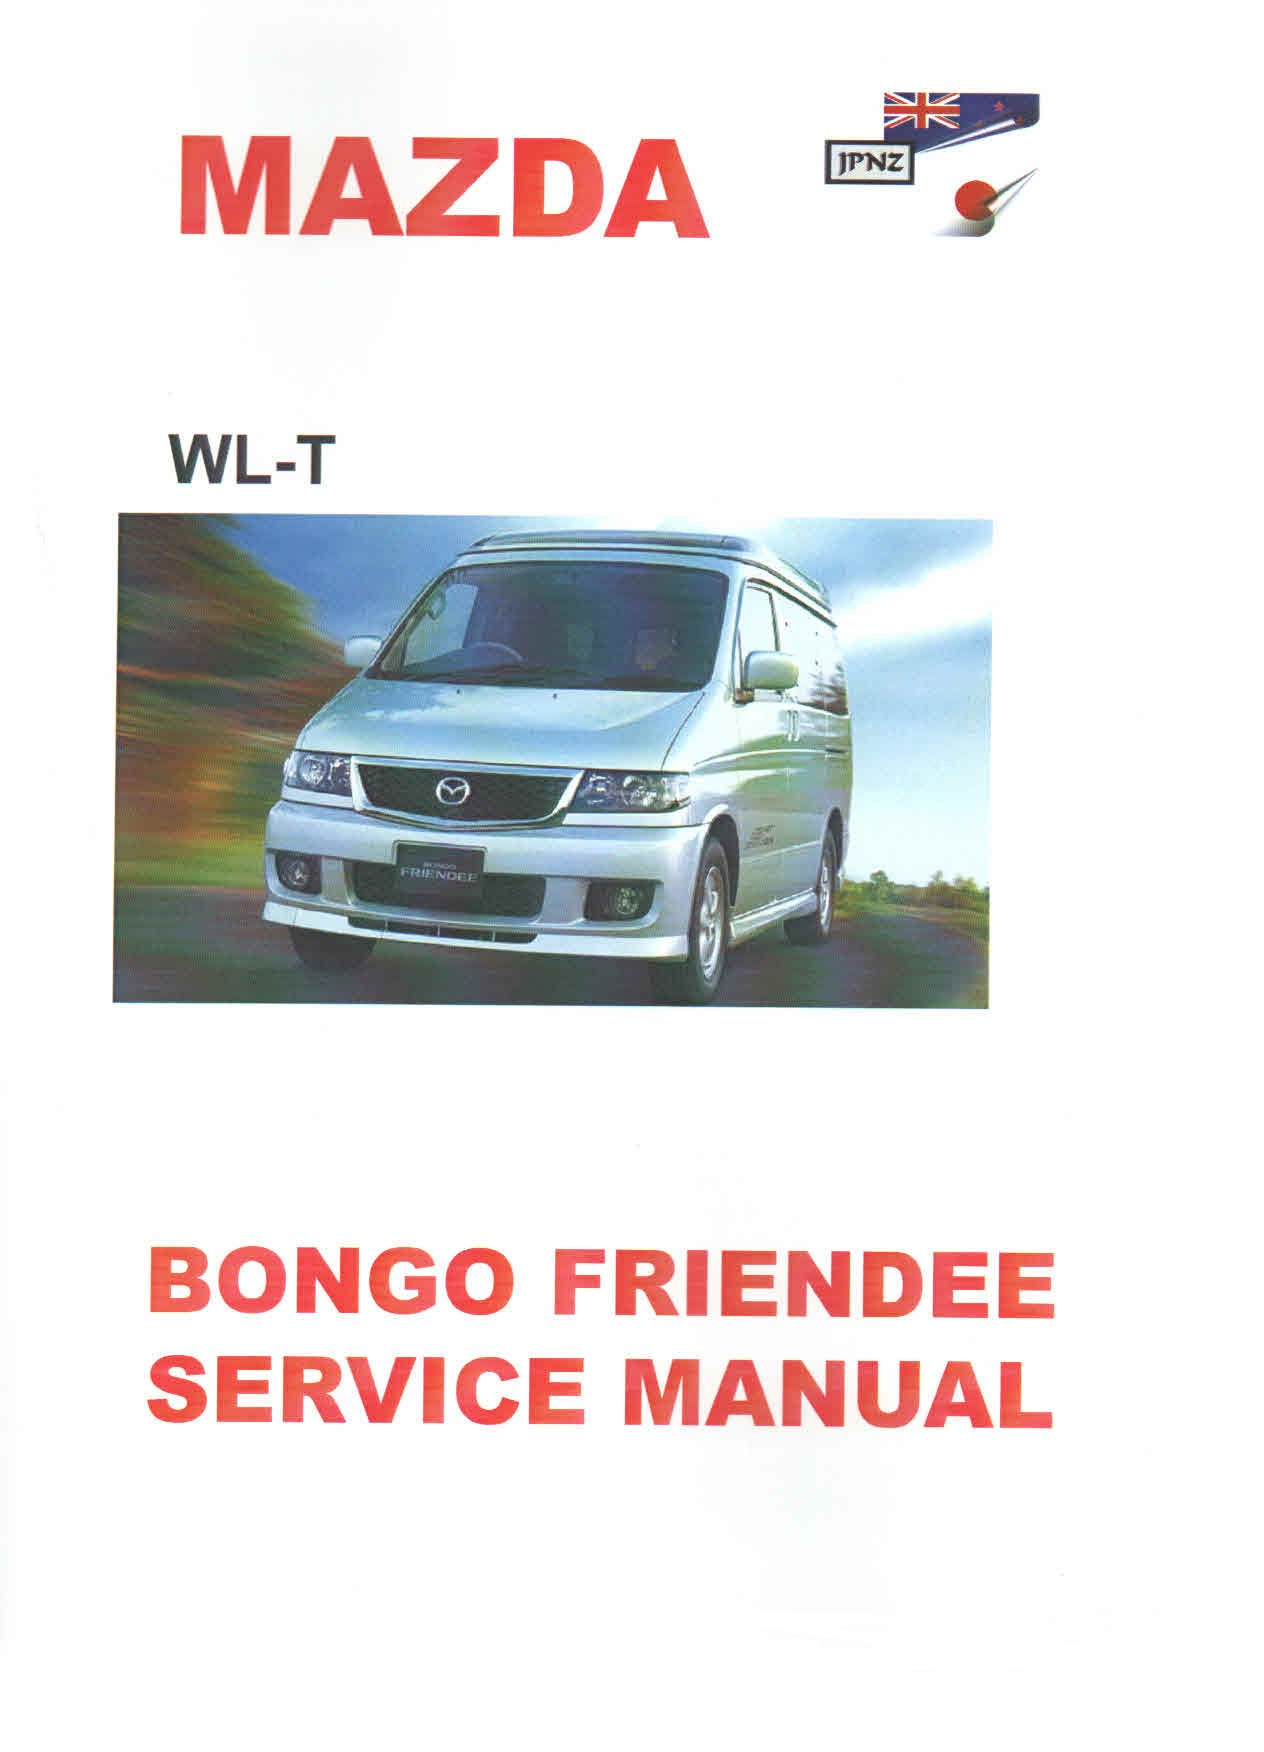 workshop manual bongo camper guide rh bongocamper com 2008 Mazda 3 mazda bongo owners manual download